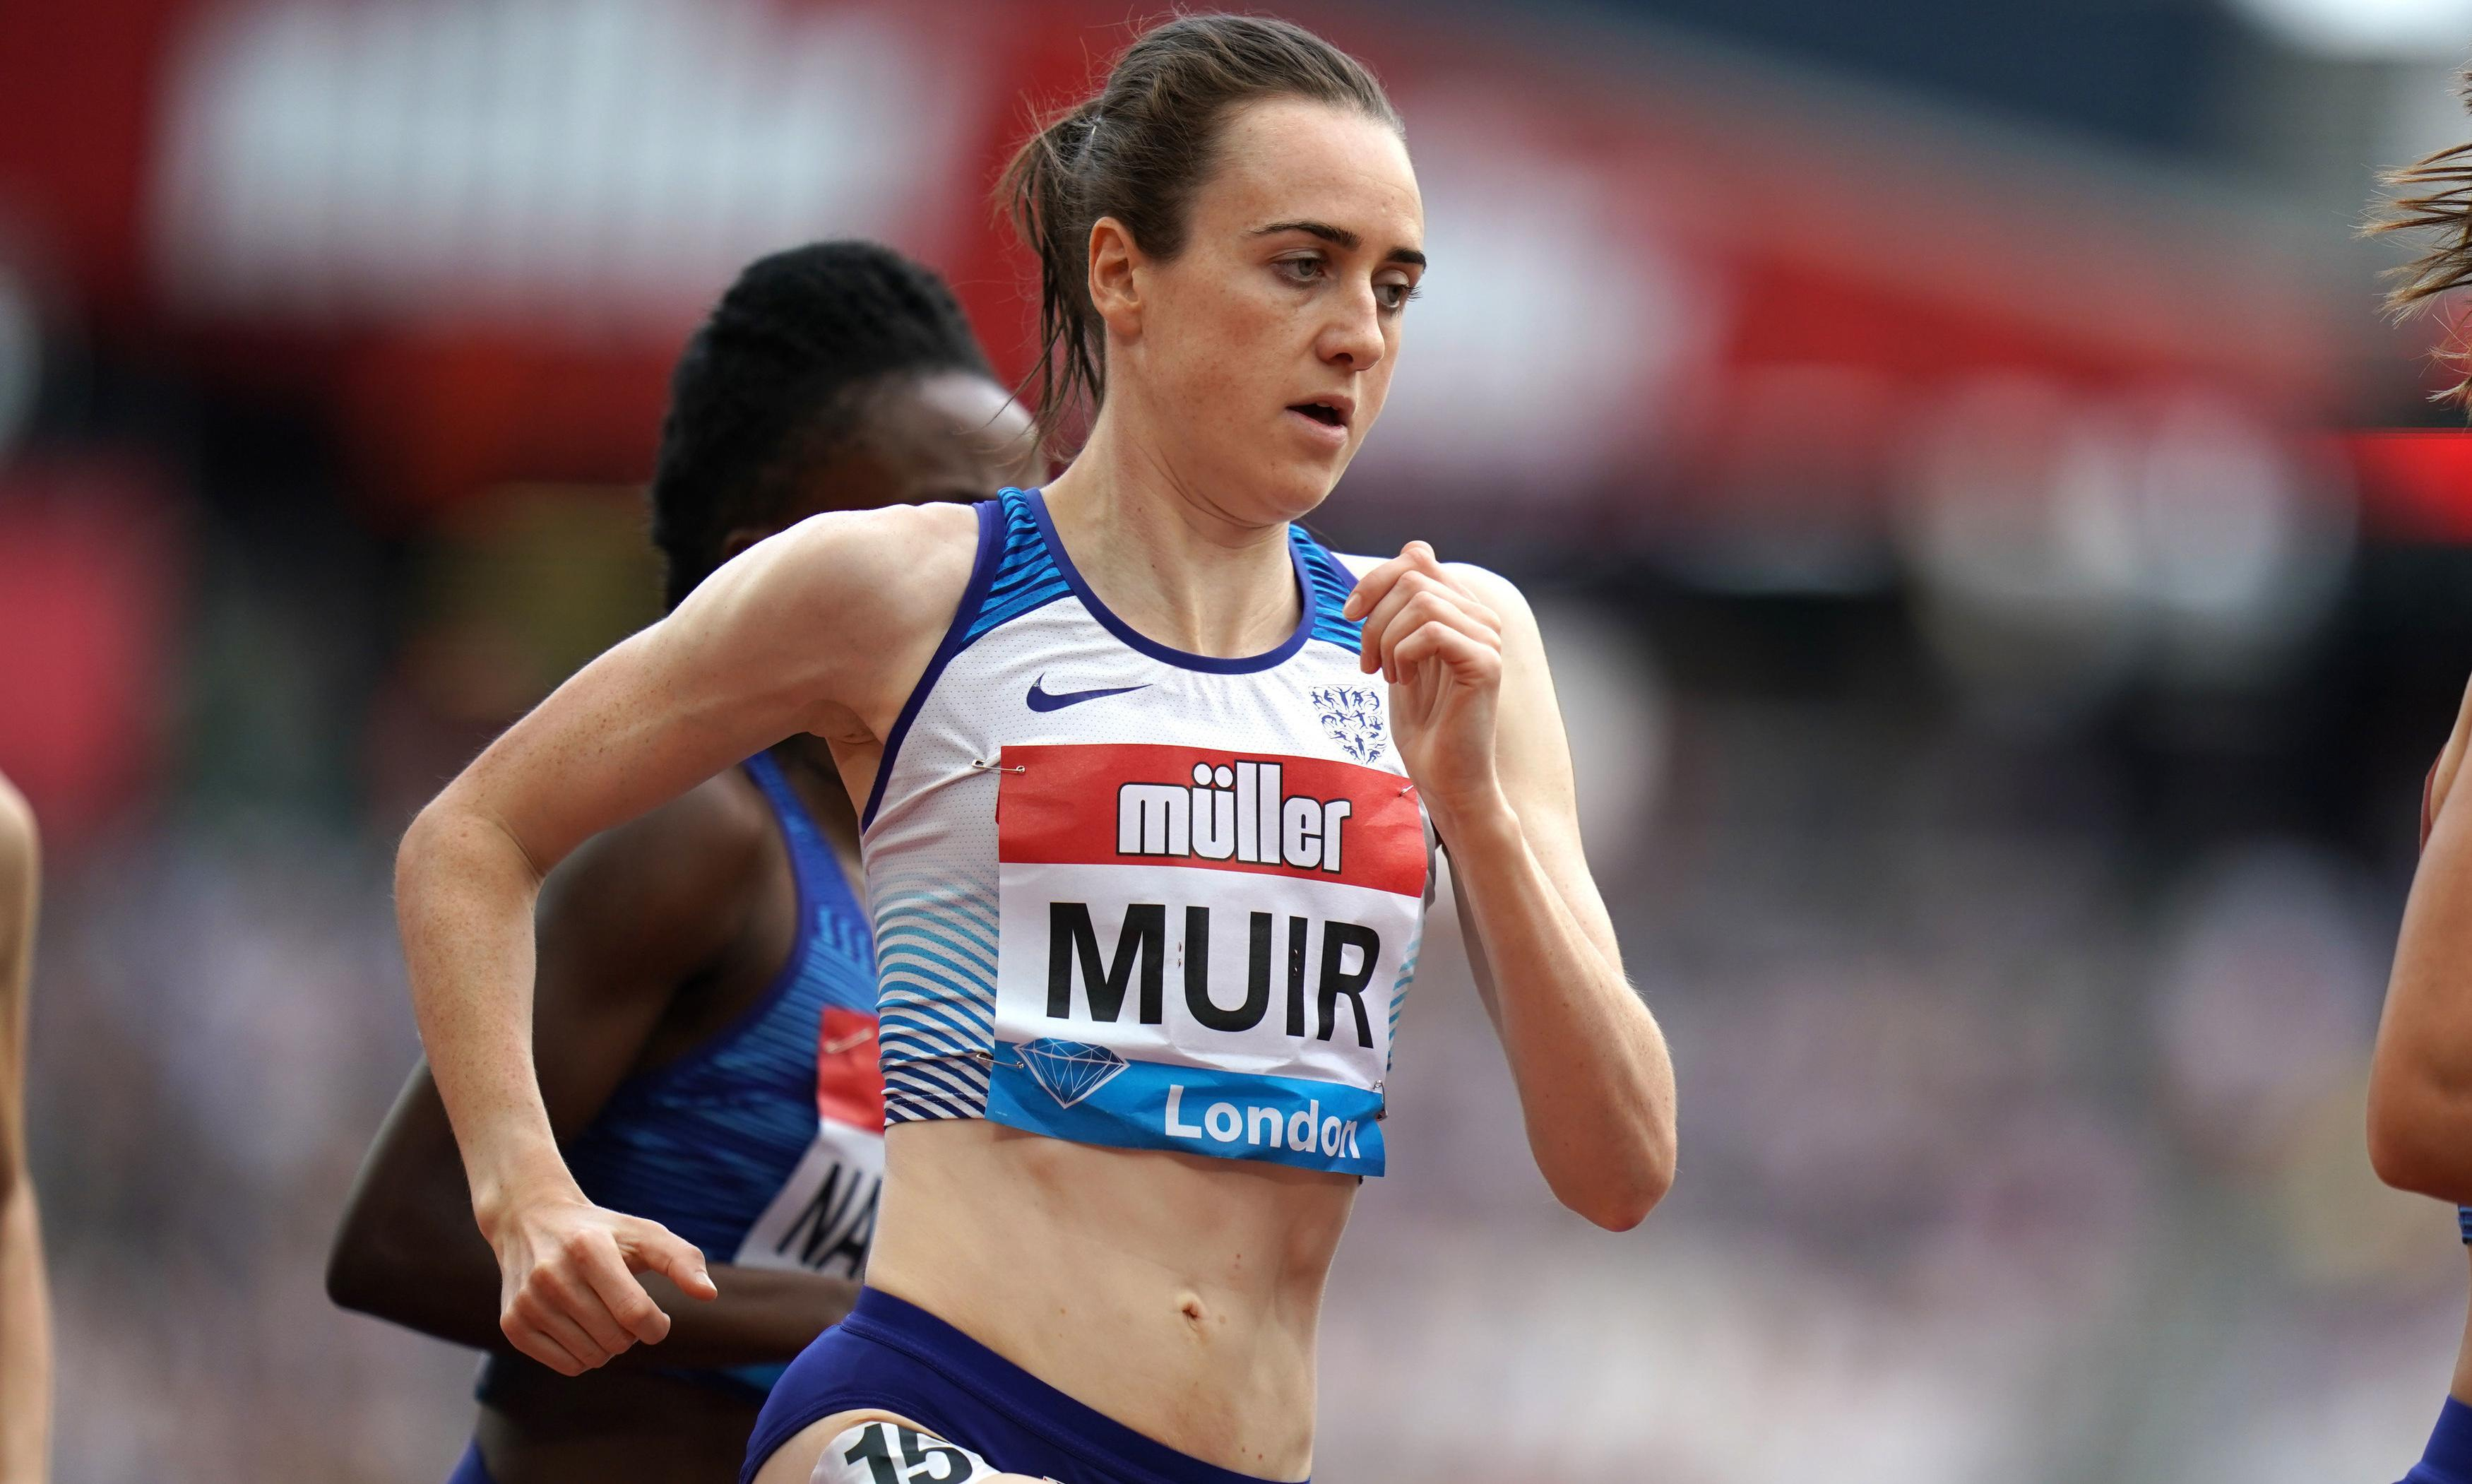 Laura Muir cruises to 1500m victory at Anniversary Games